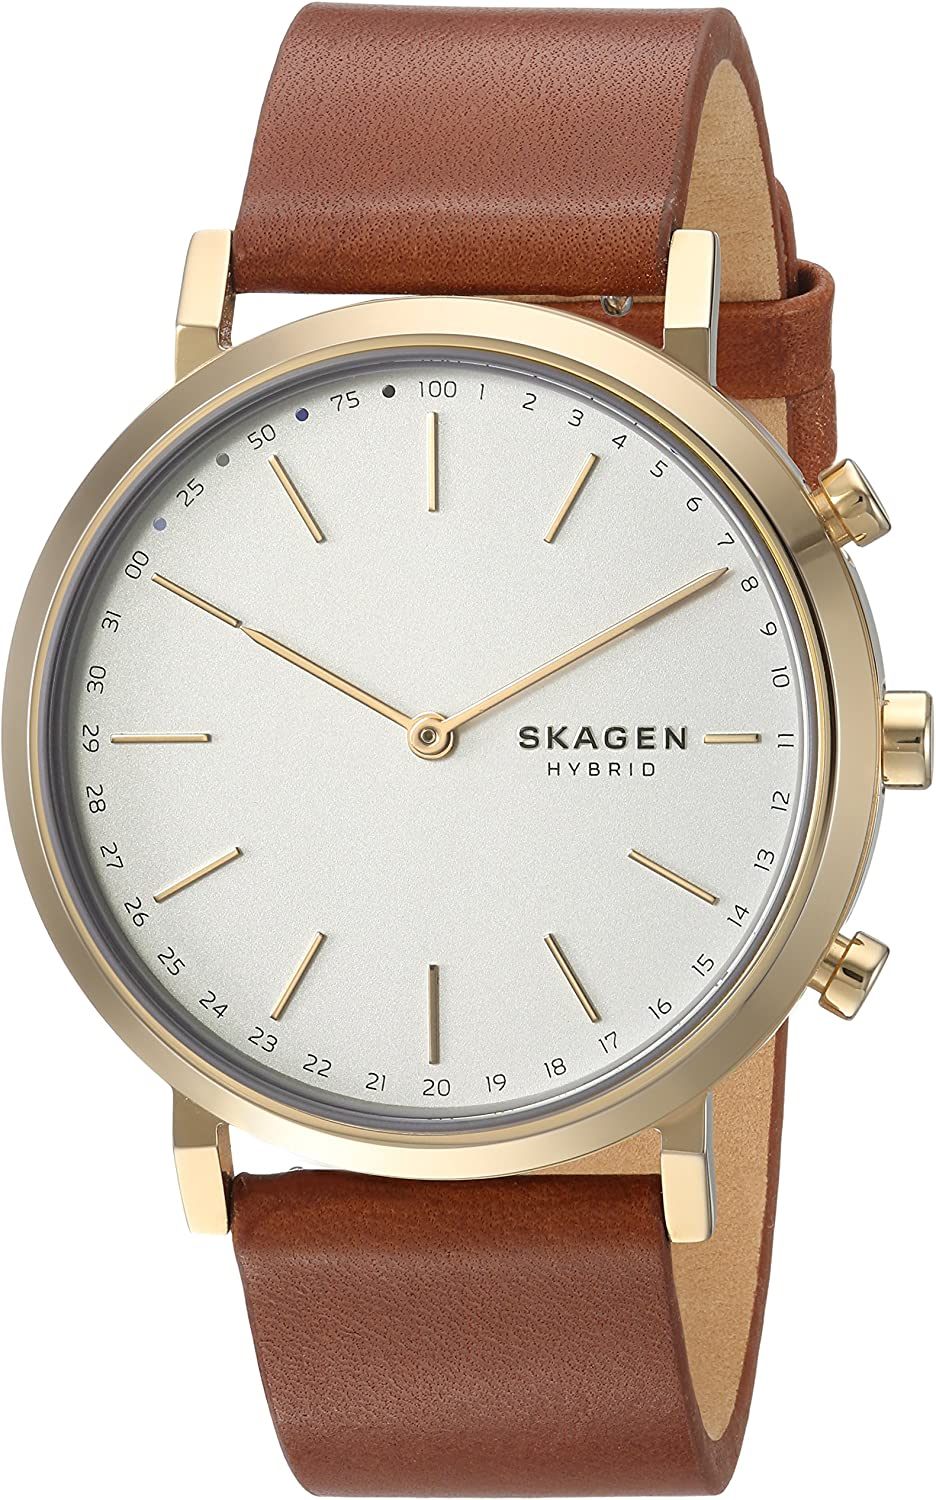 Skagen Womens Hybrid Smartwatch - Hald Brown Leather SKT1206